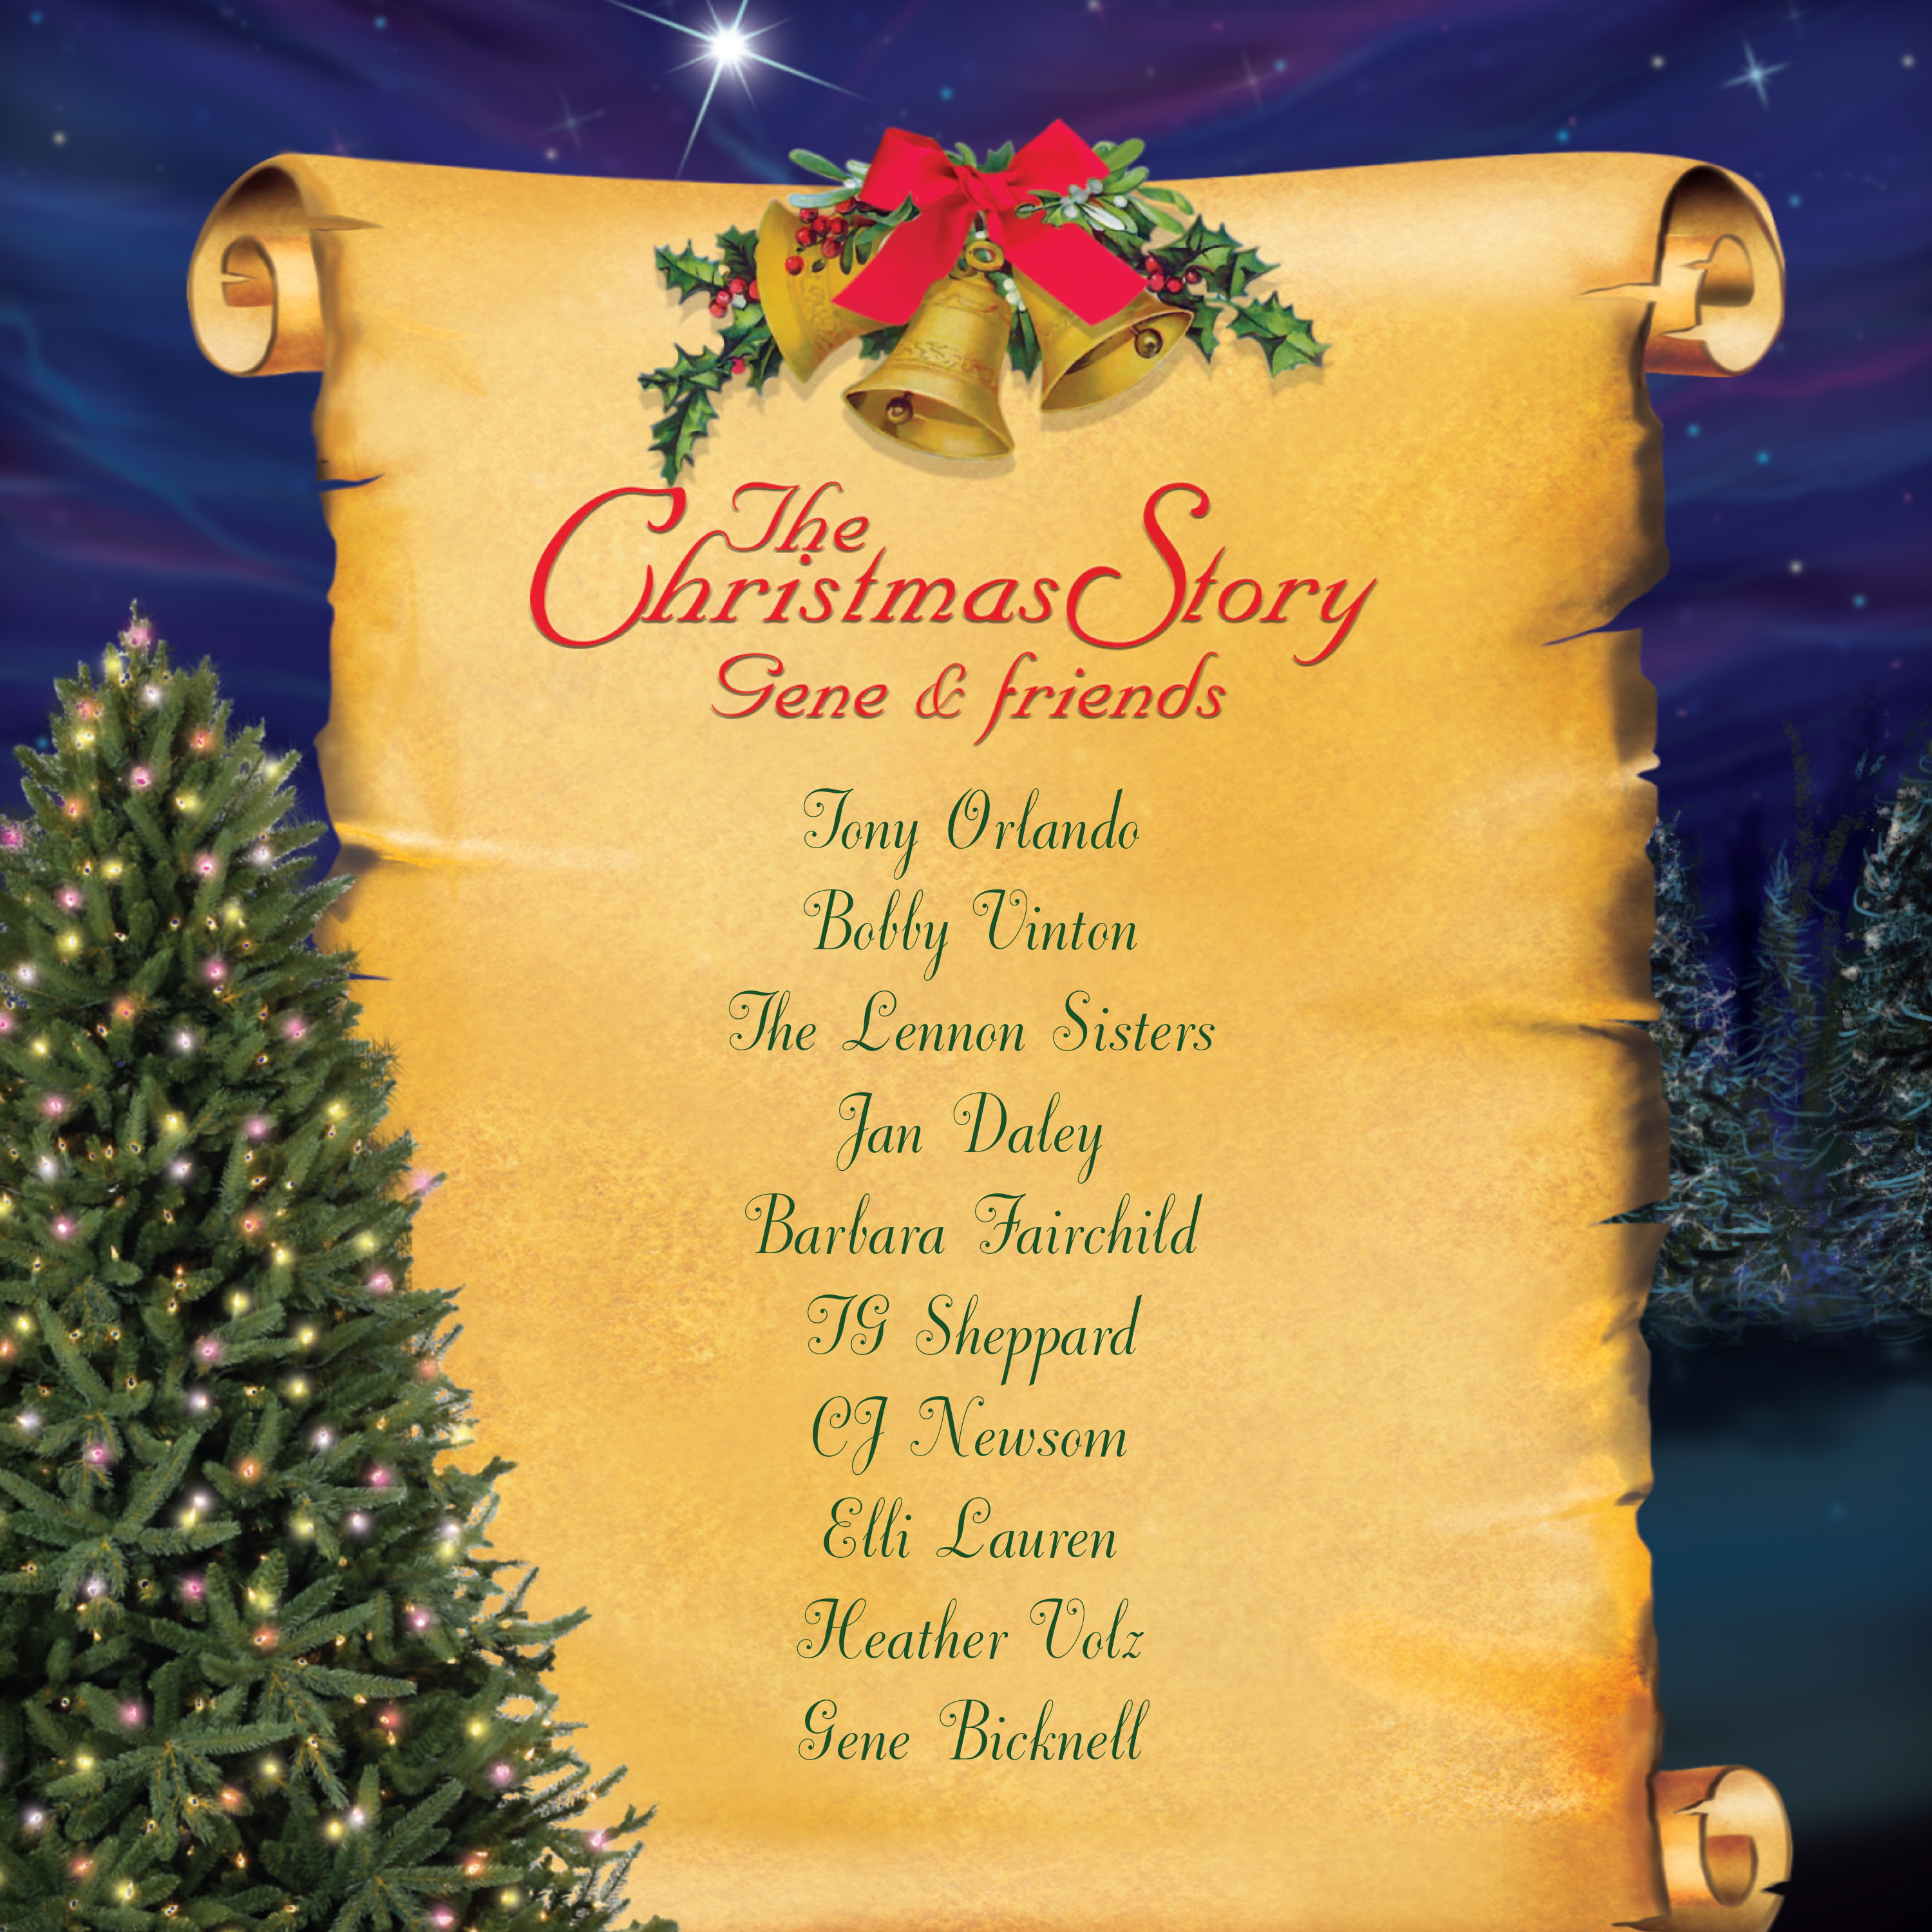 Traditional Christmas Music.More Christmas Releases The Christmas Story Gene Friends